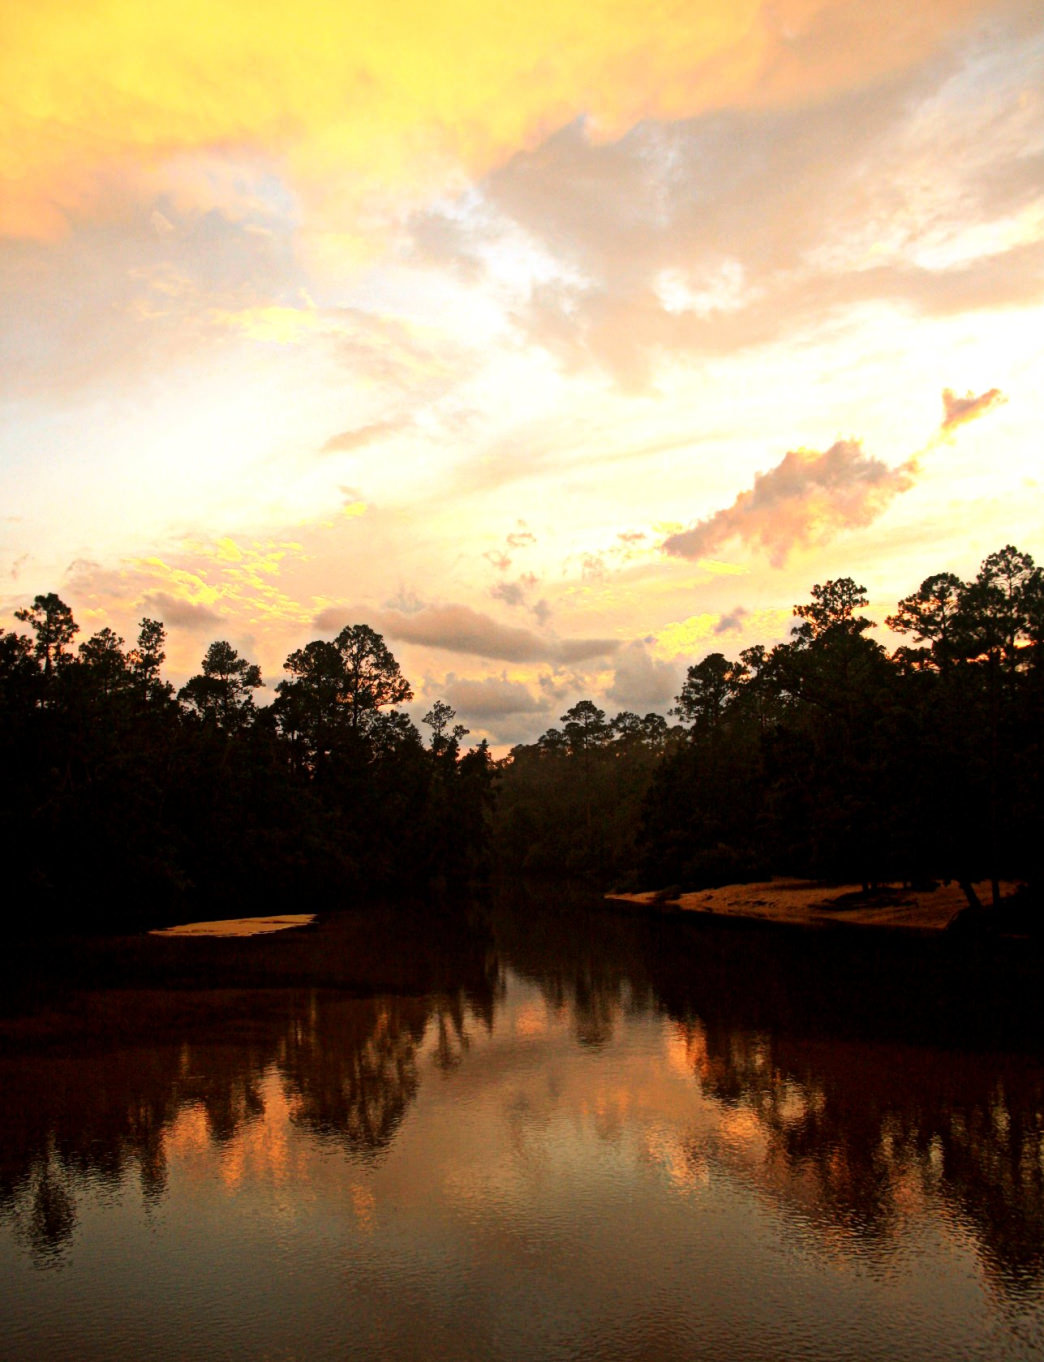 Sunset on the Blackwater River in Florida.